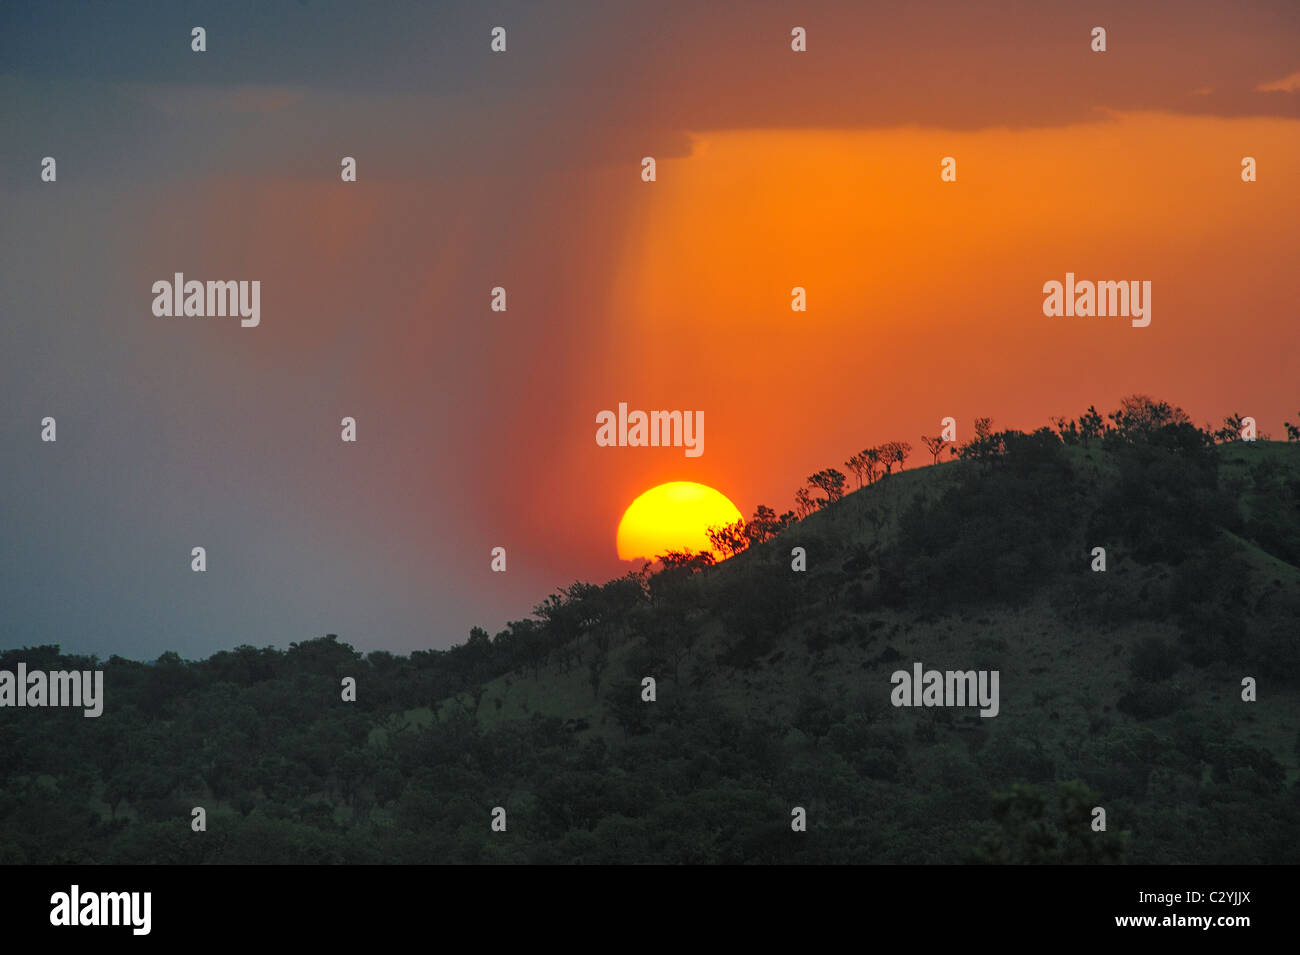 Coucher de soleil sur les collines du Parc National de Boma, au Soudan Photo Stock